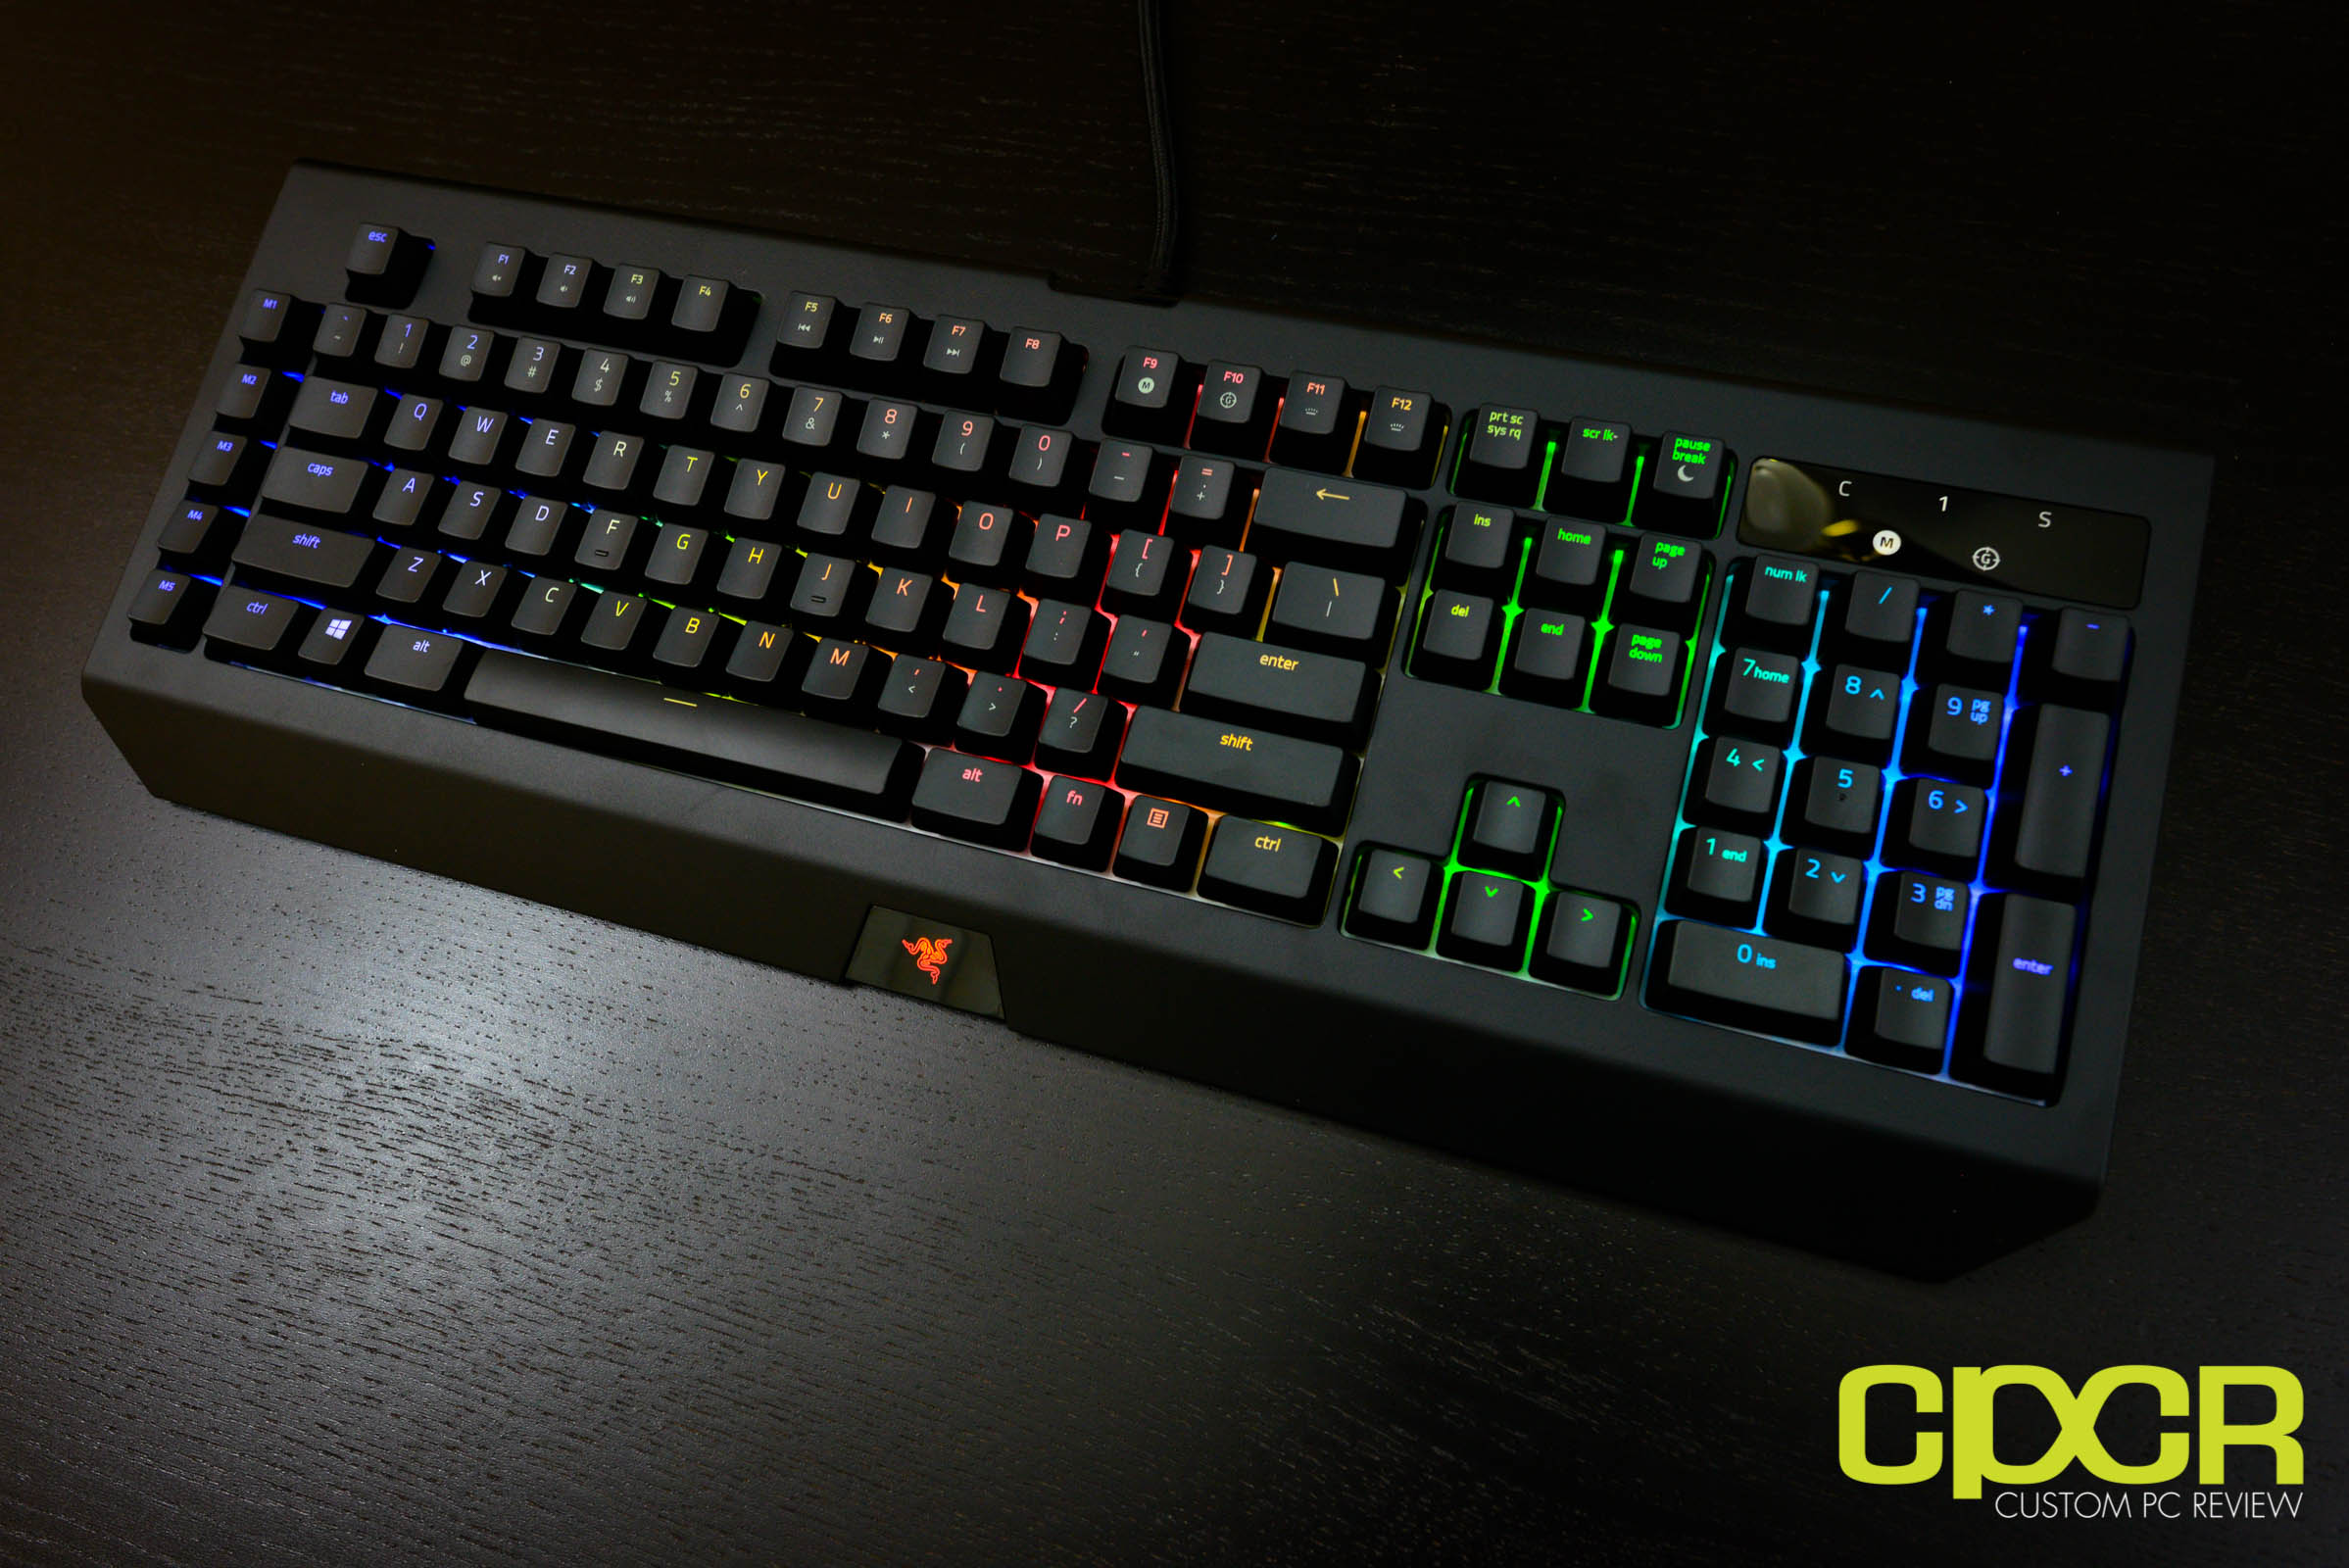 0b9d9799d77 Plugging in the Razer BlackWidow Chroma V2, we can take a look at the Chroma  backlighting functionality. As expected of a Chroma keyboard, ...